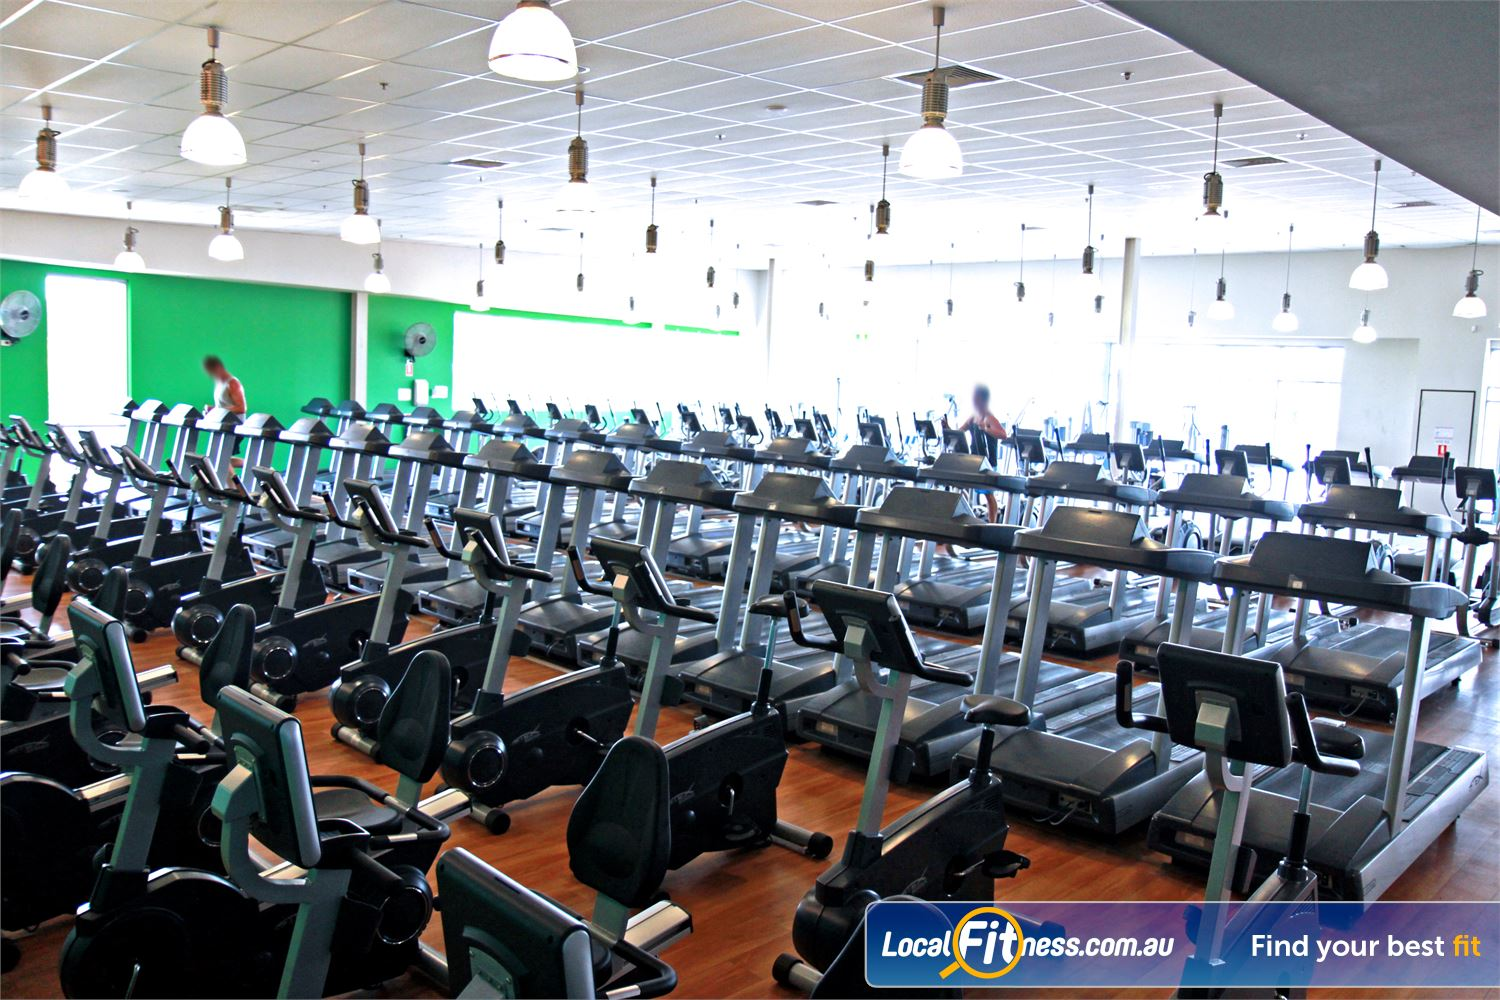 Goodlife Health Clubs Ipswich Our Ipswich gym includes 120 pieces of state-of-the-art cardio equipment.